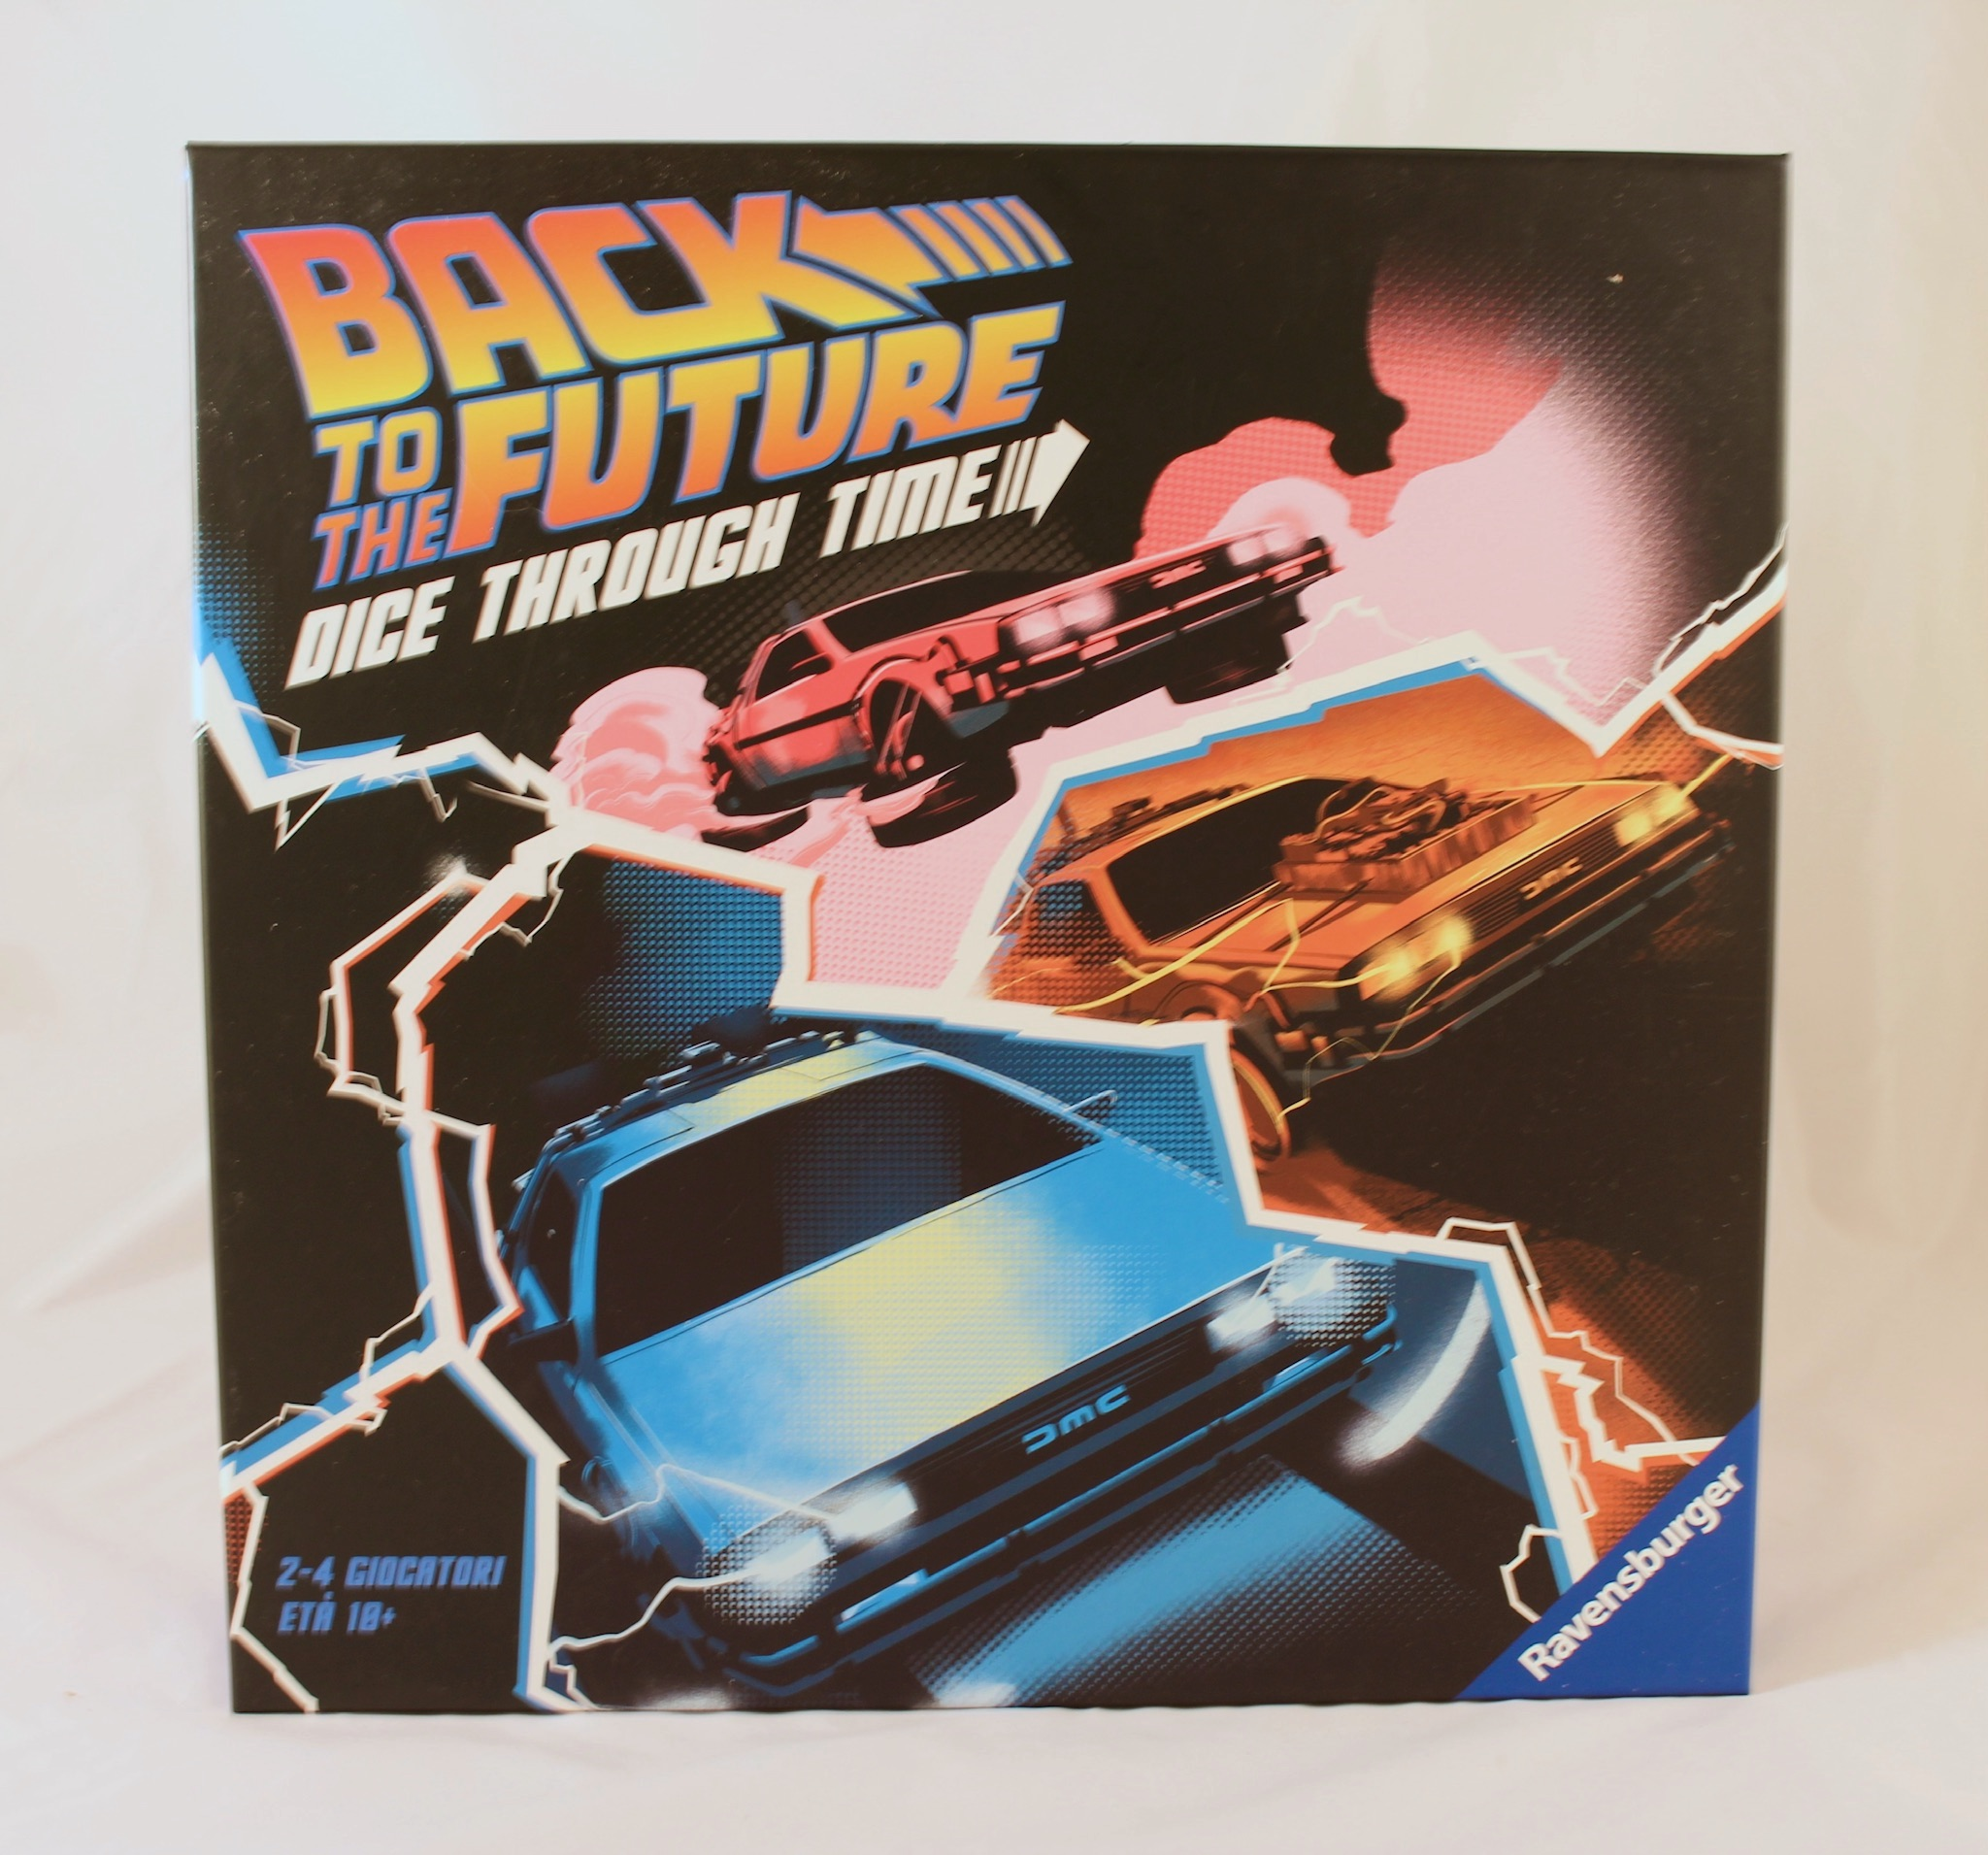 Back to The Future Dice Through Time Box Fronte